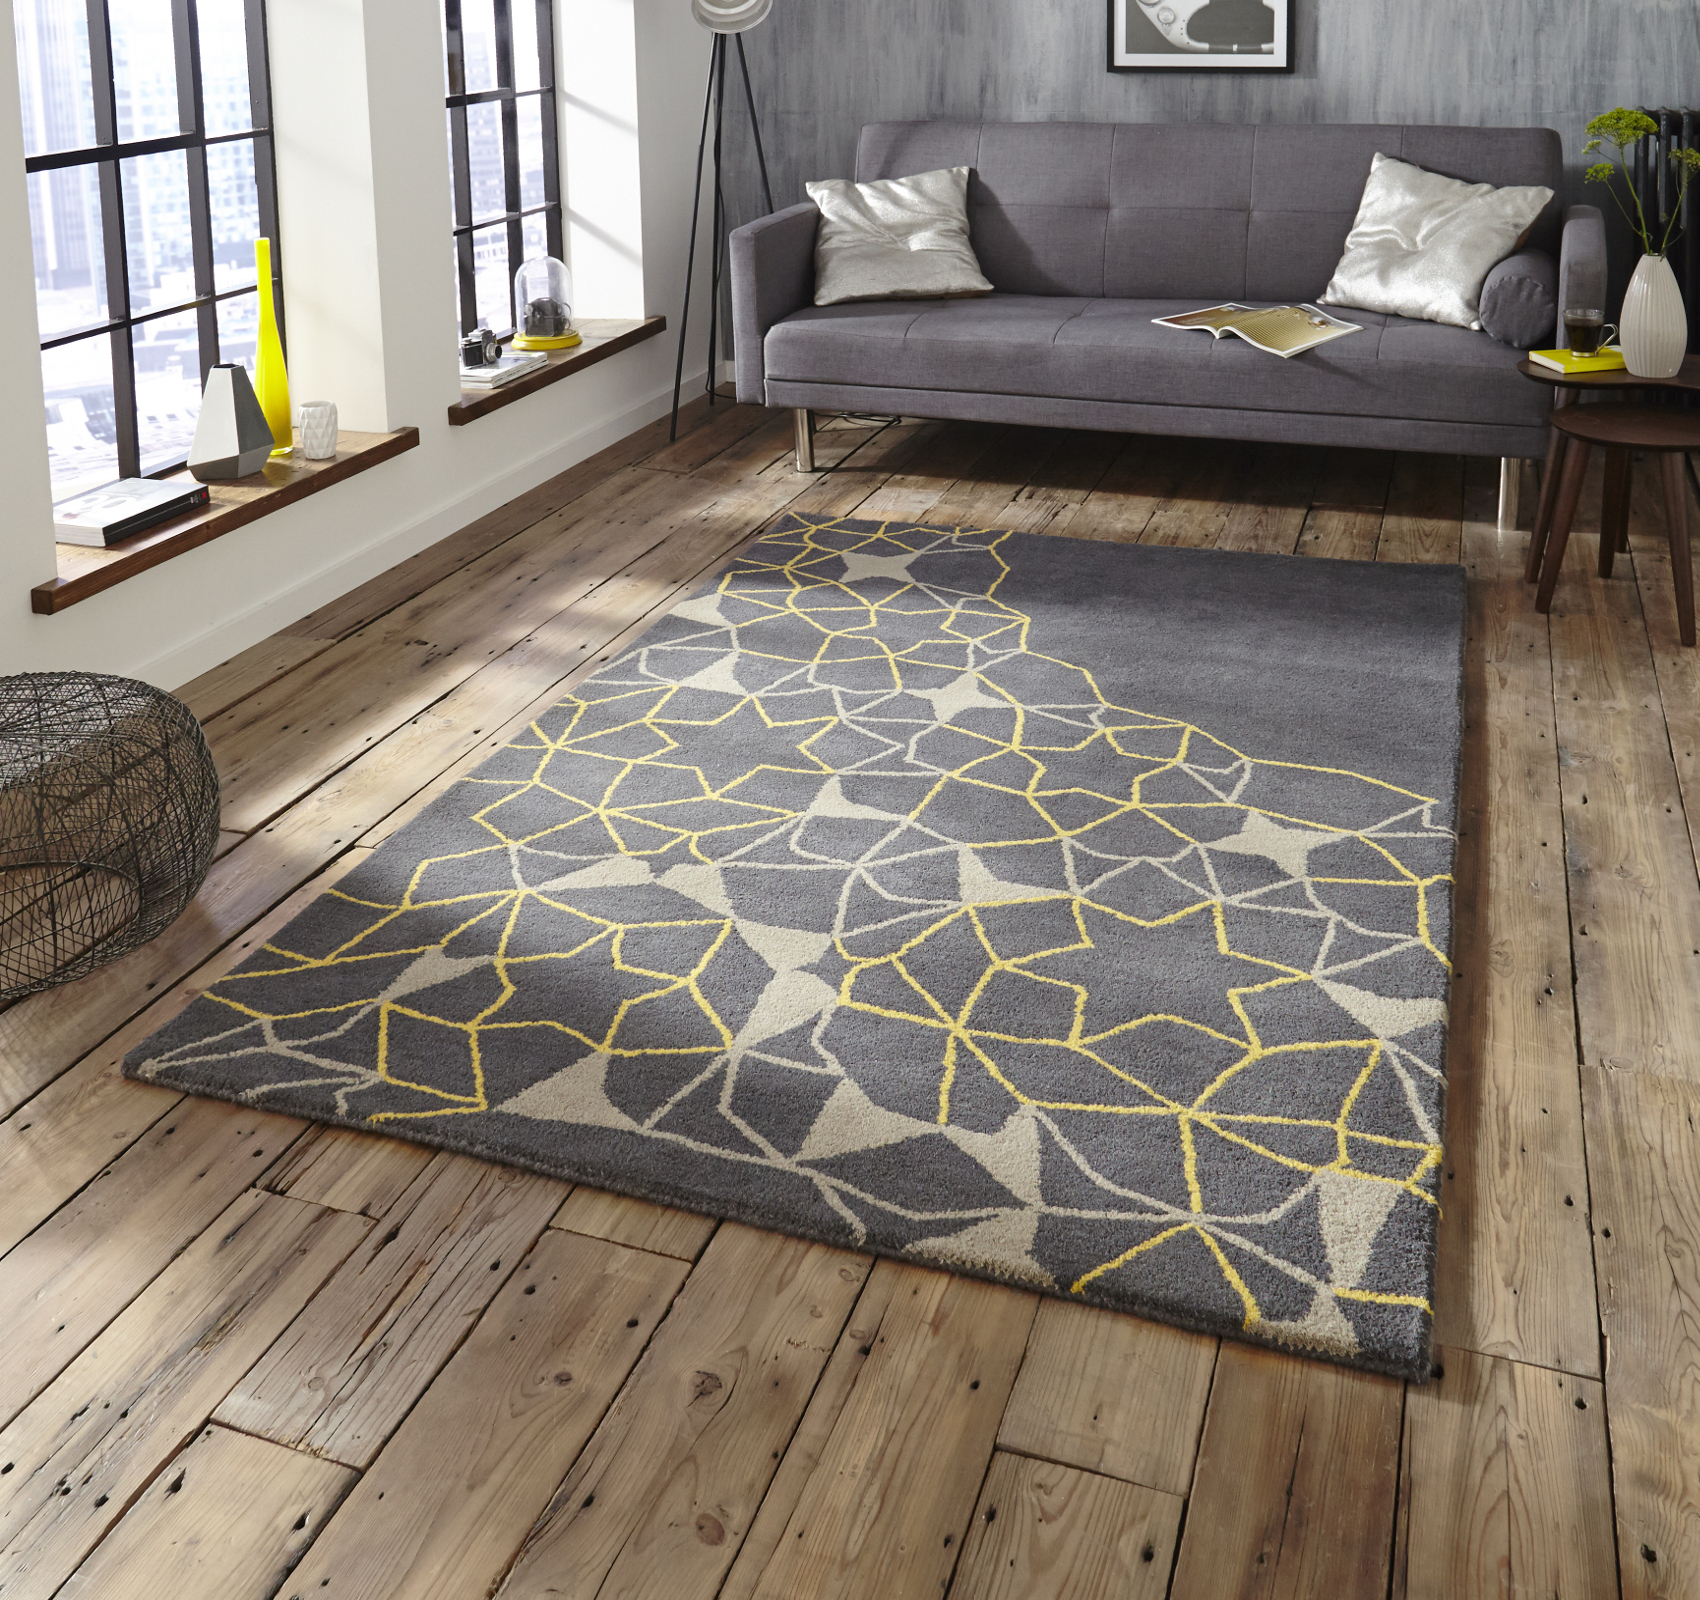 Spectrum Hand Tufted Arrows Stars Rug 100% Wool Modern